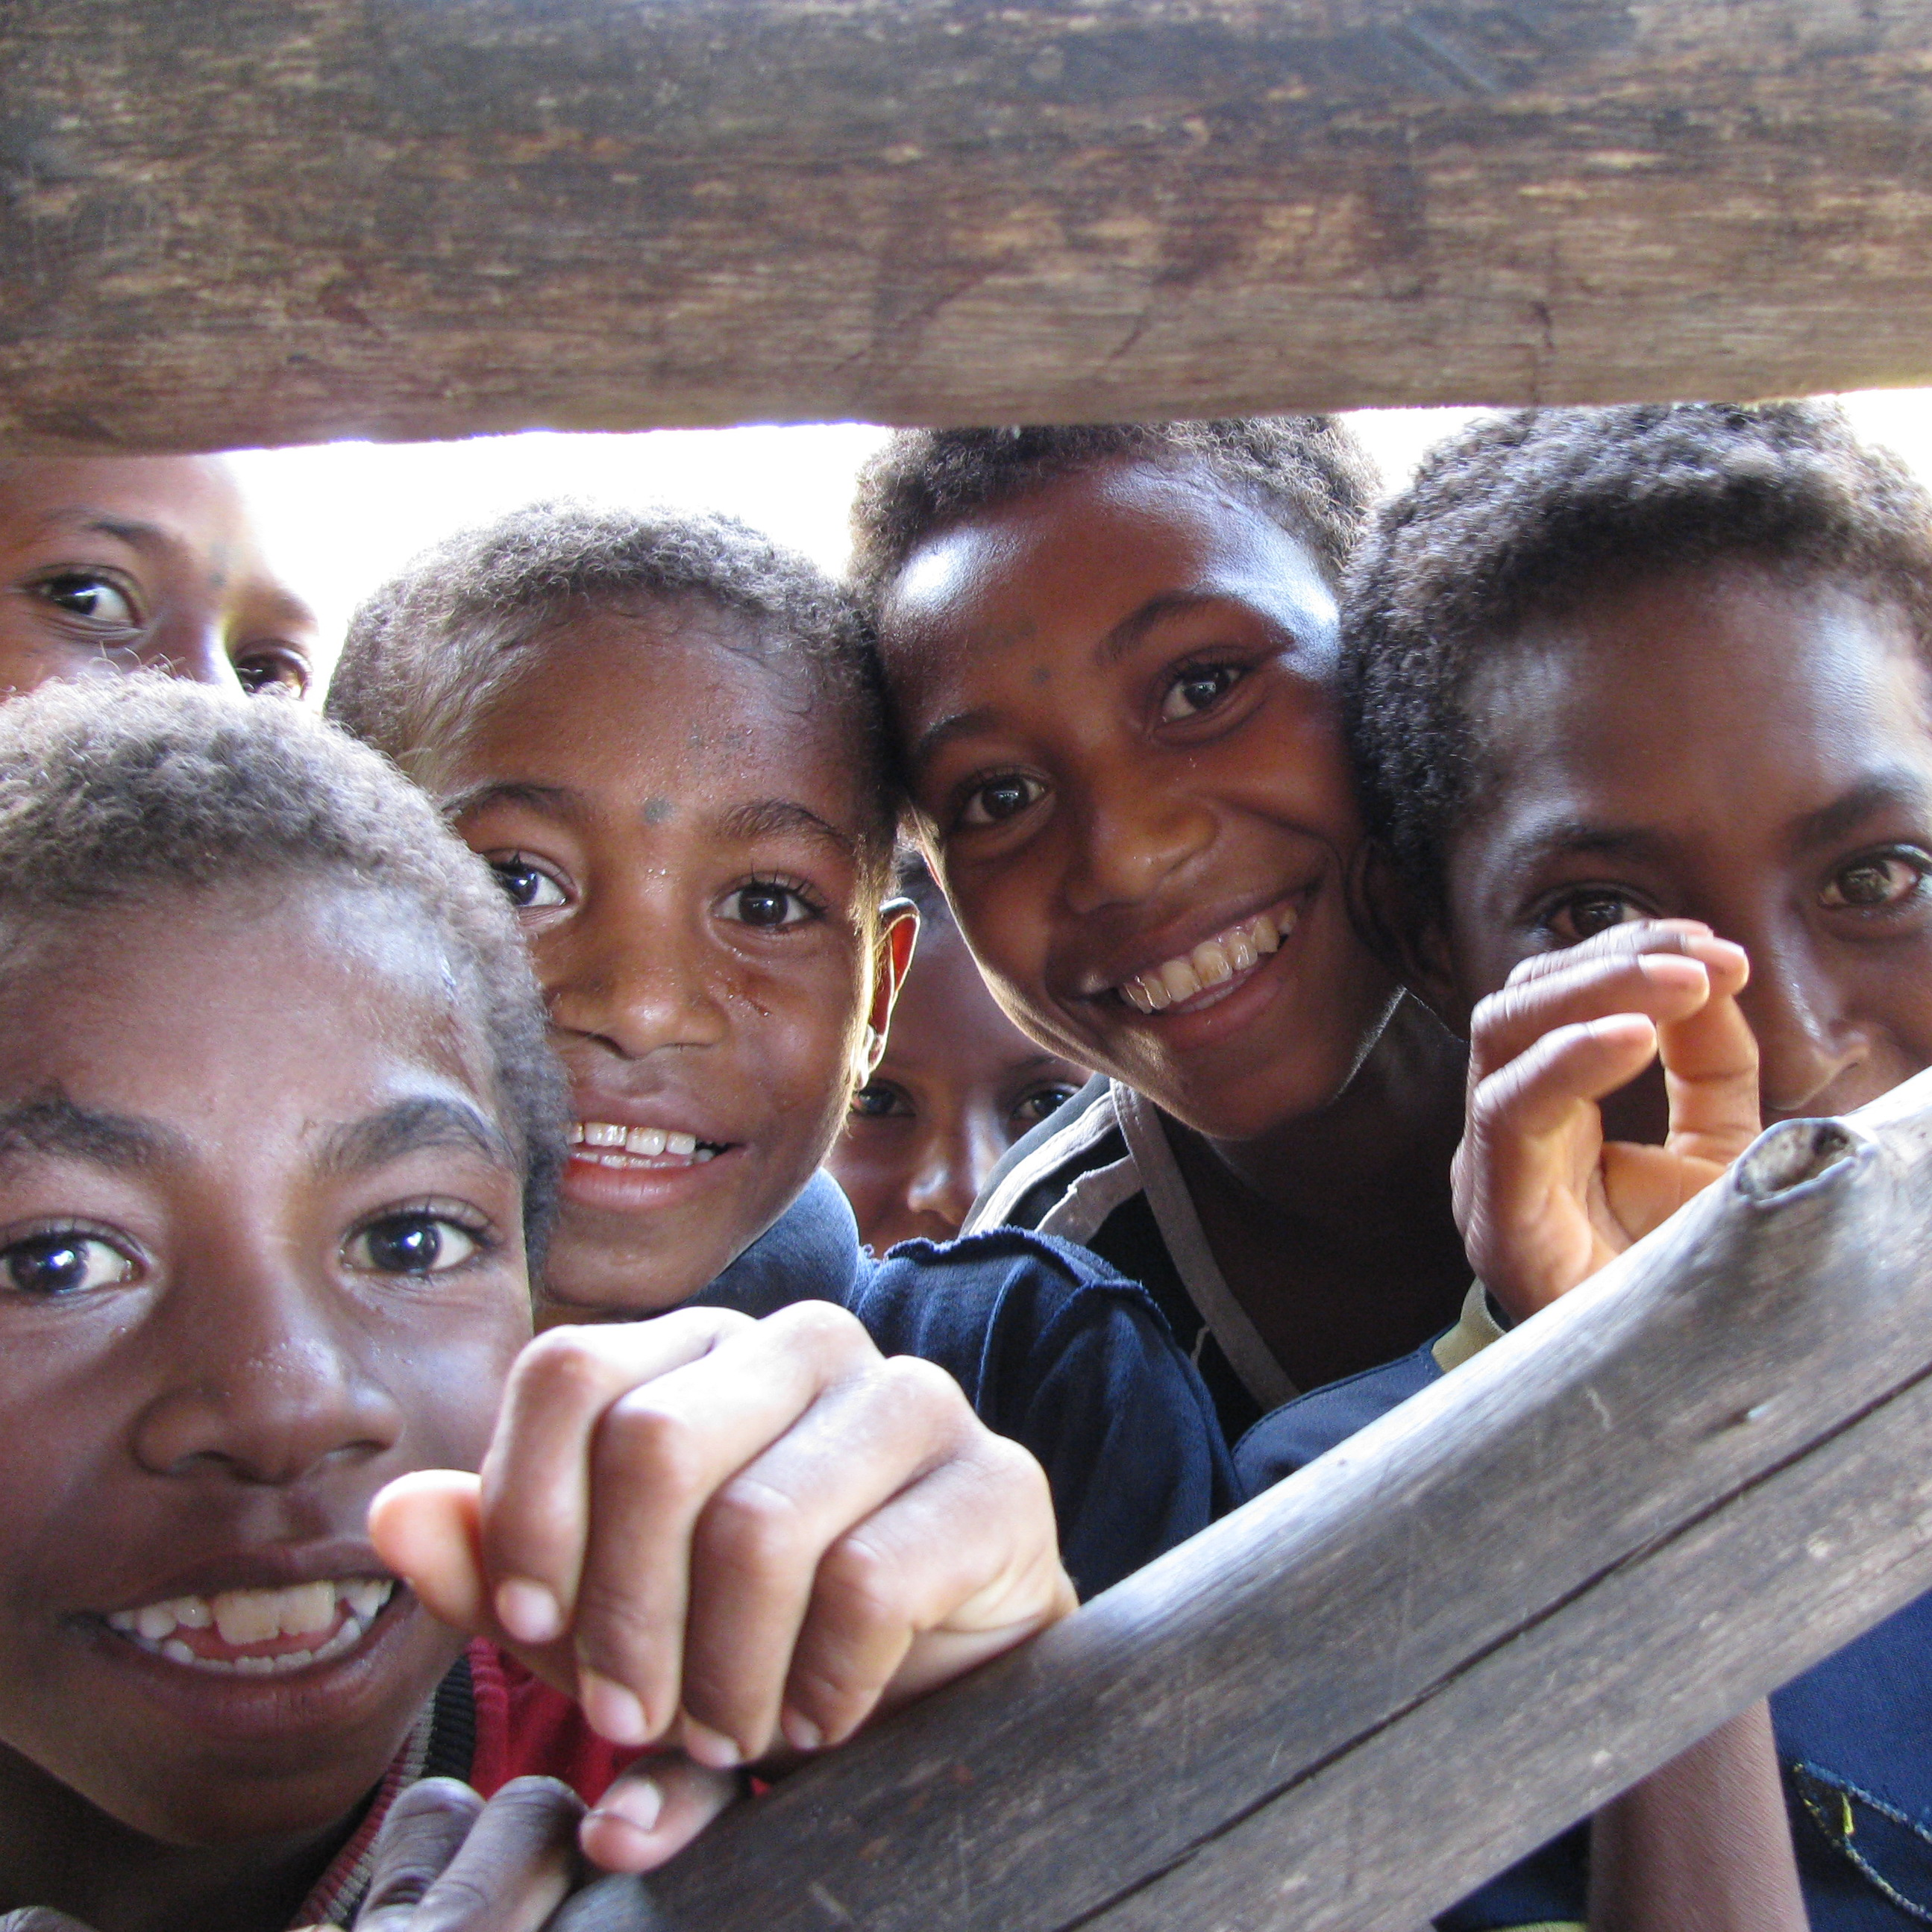 Papua New Guinea Kids Peeking at the Camera, New Guinea Art, Oceanic Art, South Pacific Art